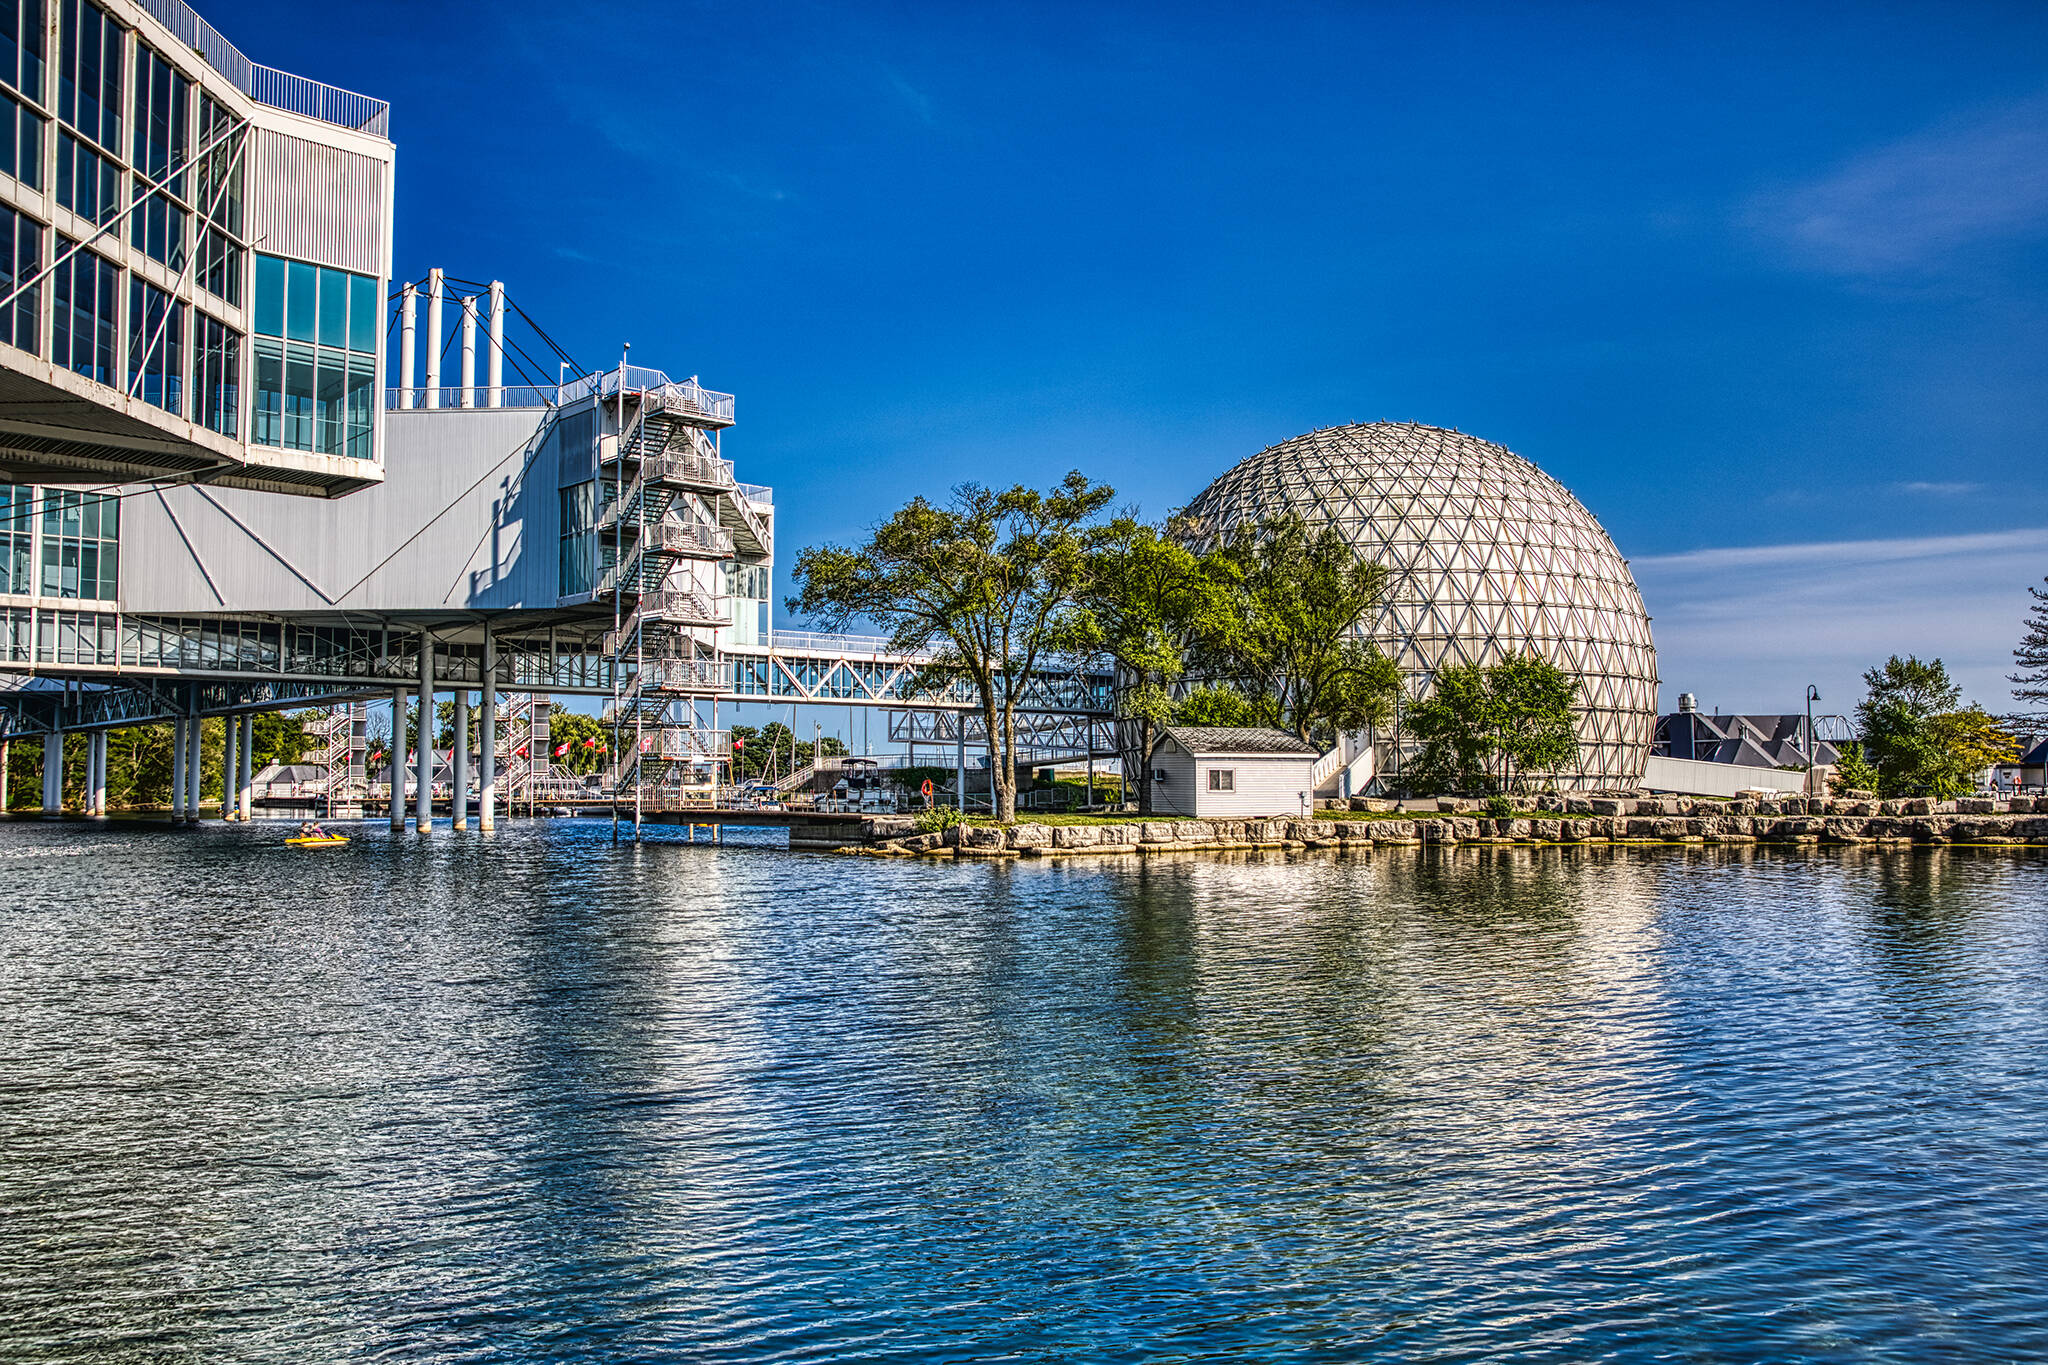 ontario place revitalization